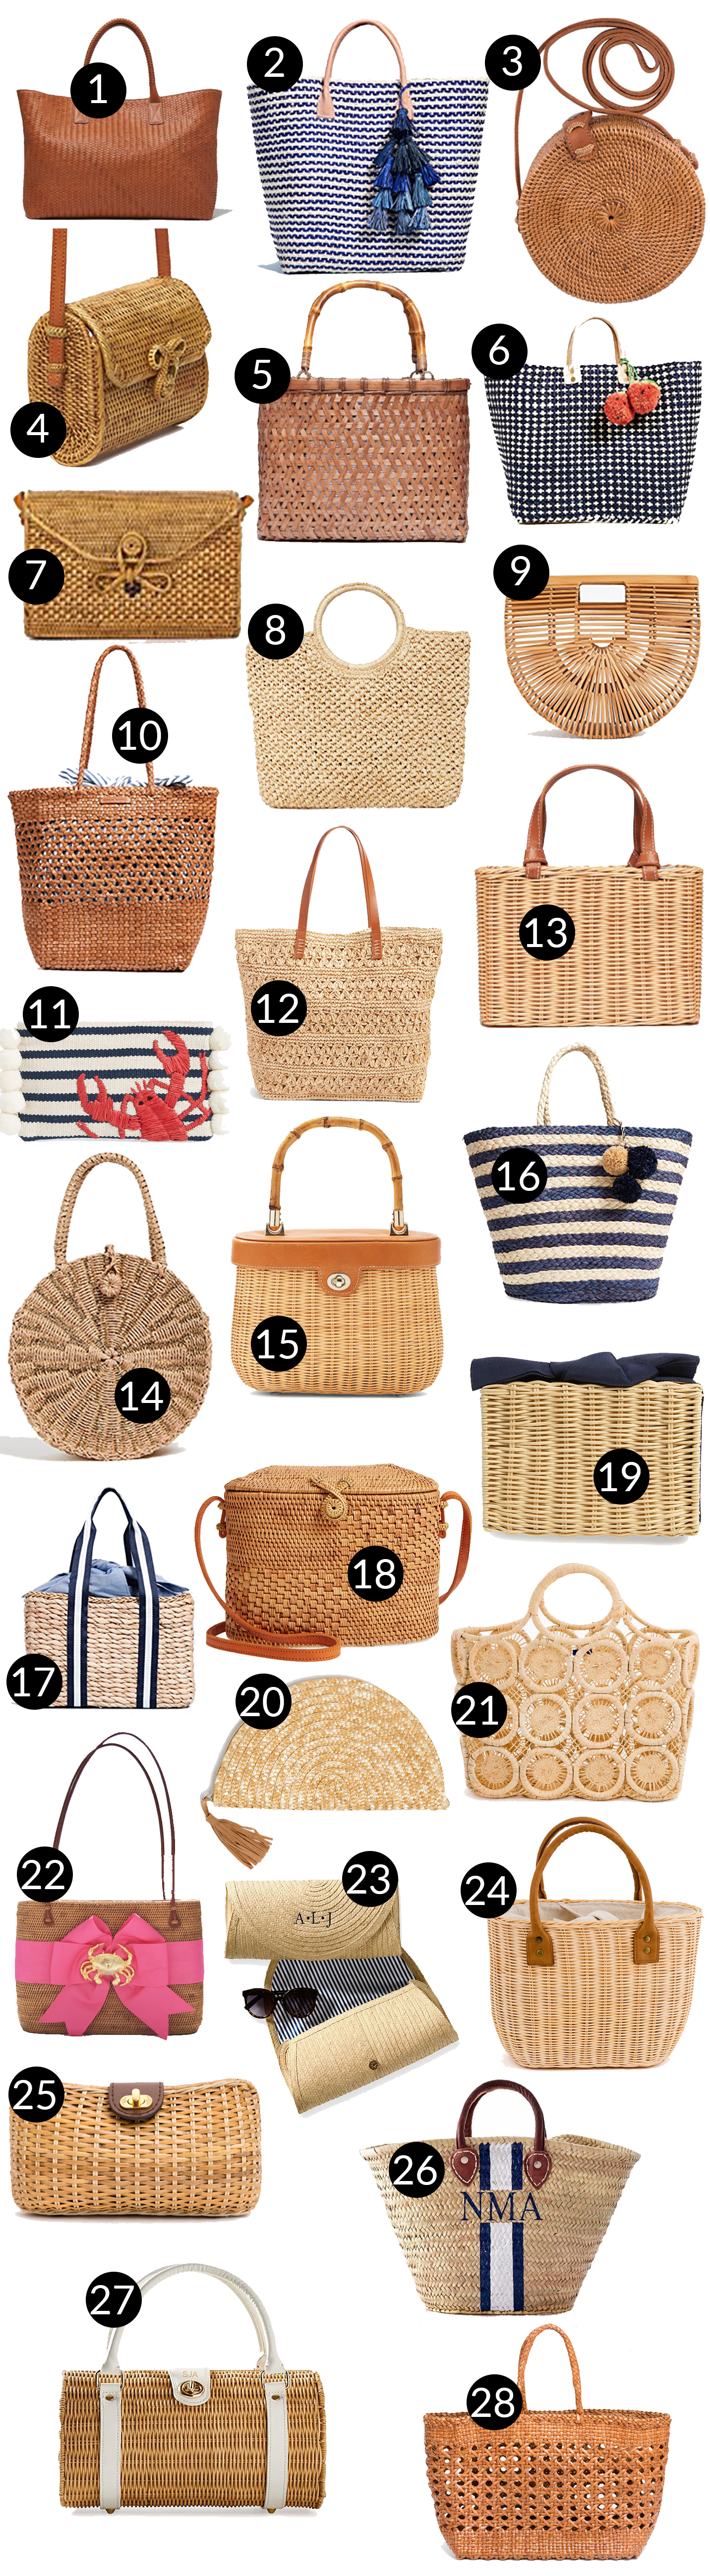 Preppy Woven Bags - Kelly in the City